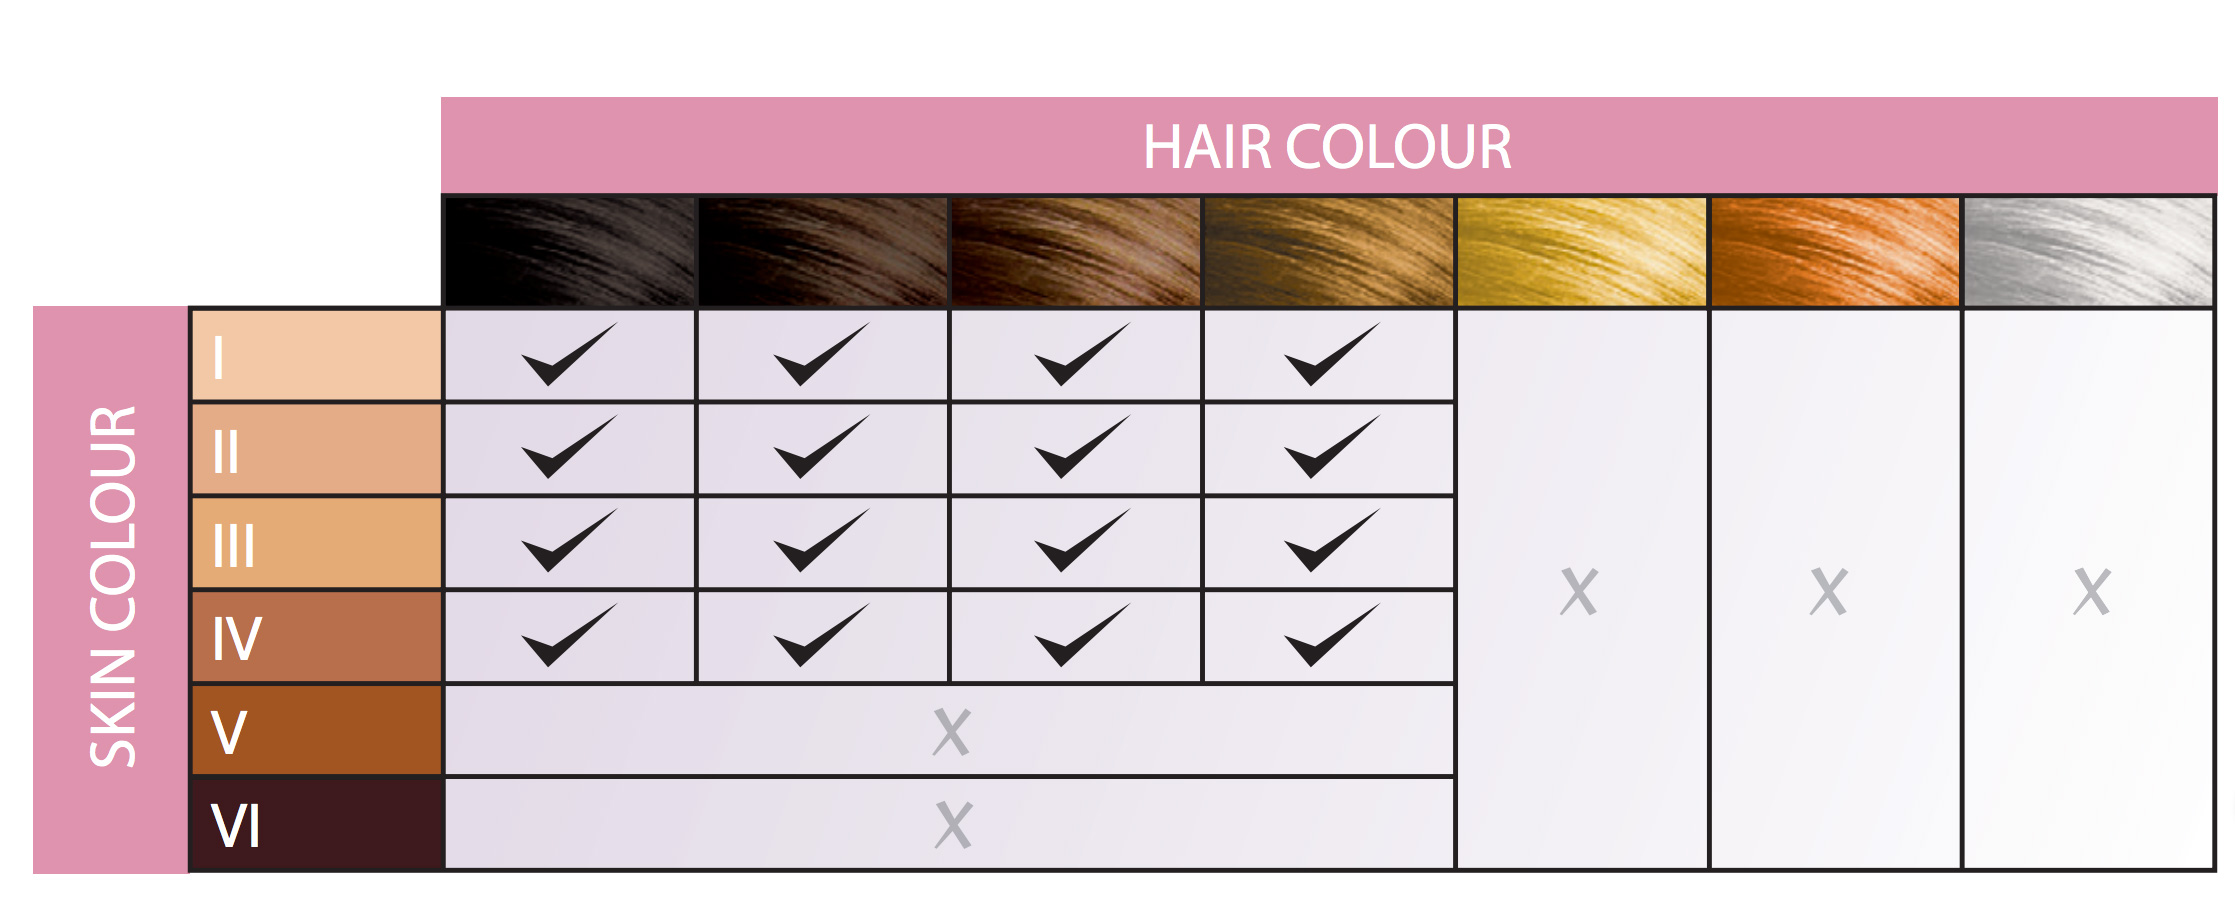 Compatible Skin and Hair Color for Laser hair removal treatment